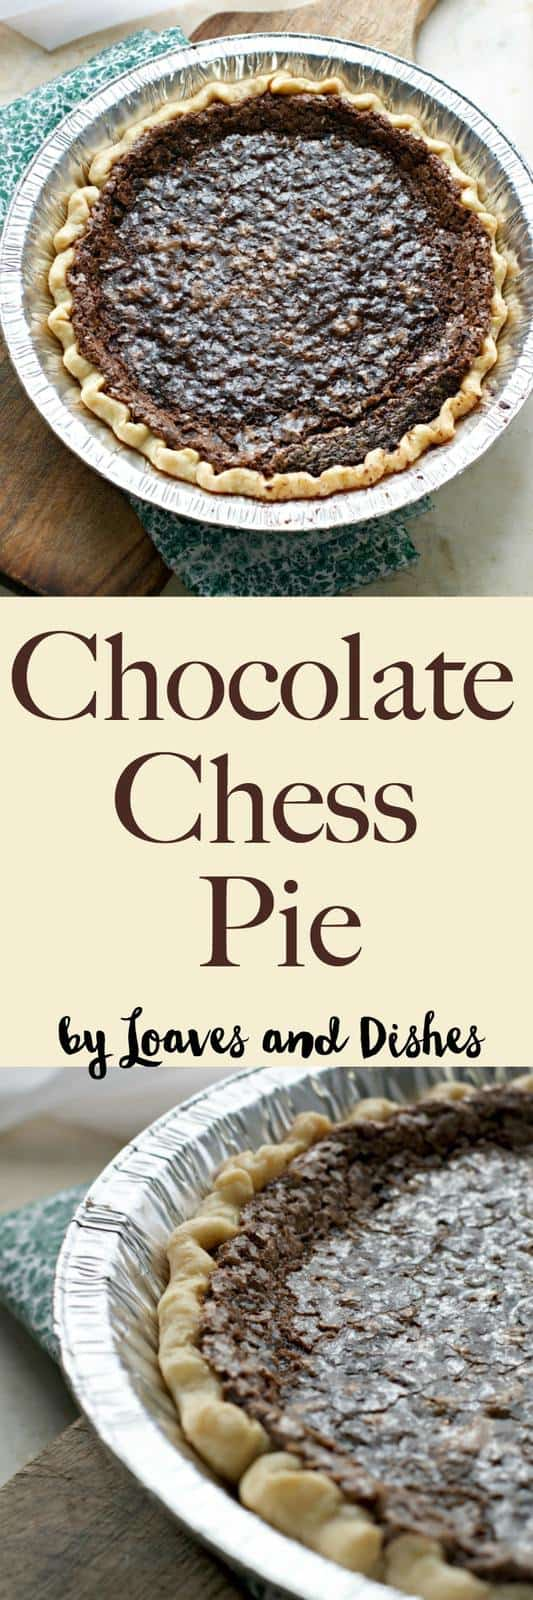 This chocolate chess pie is a simple, easy version of a favorite southern classic. Simply the best and like Paula Deen or Pioneer Woman would make